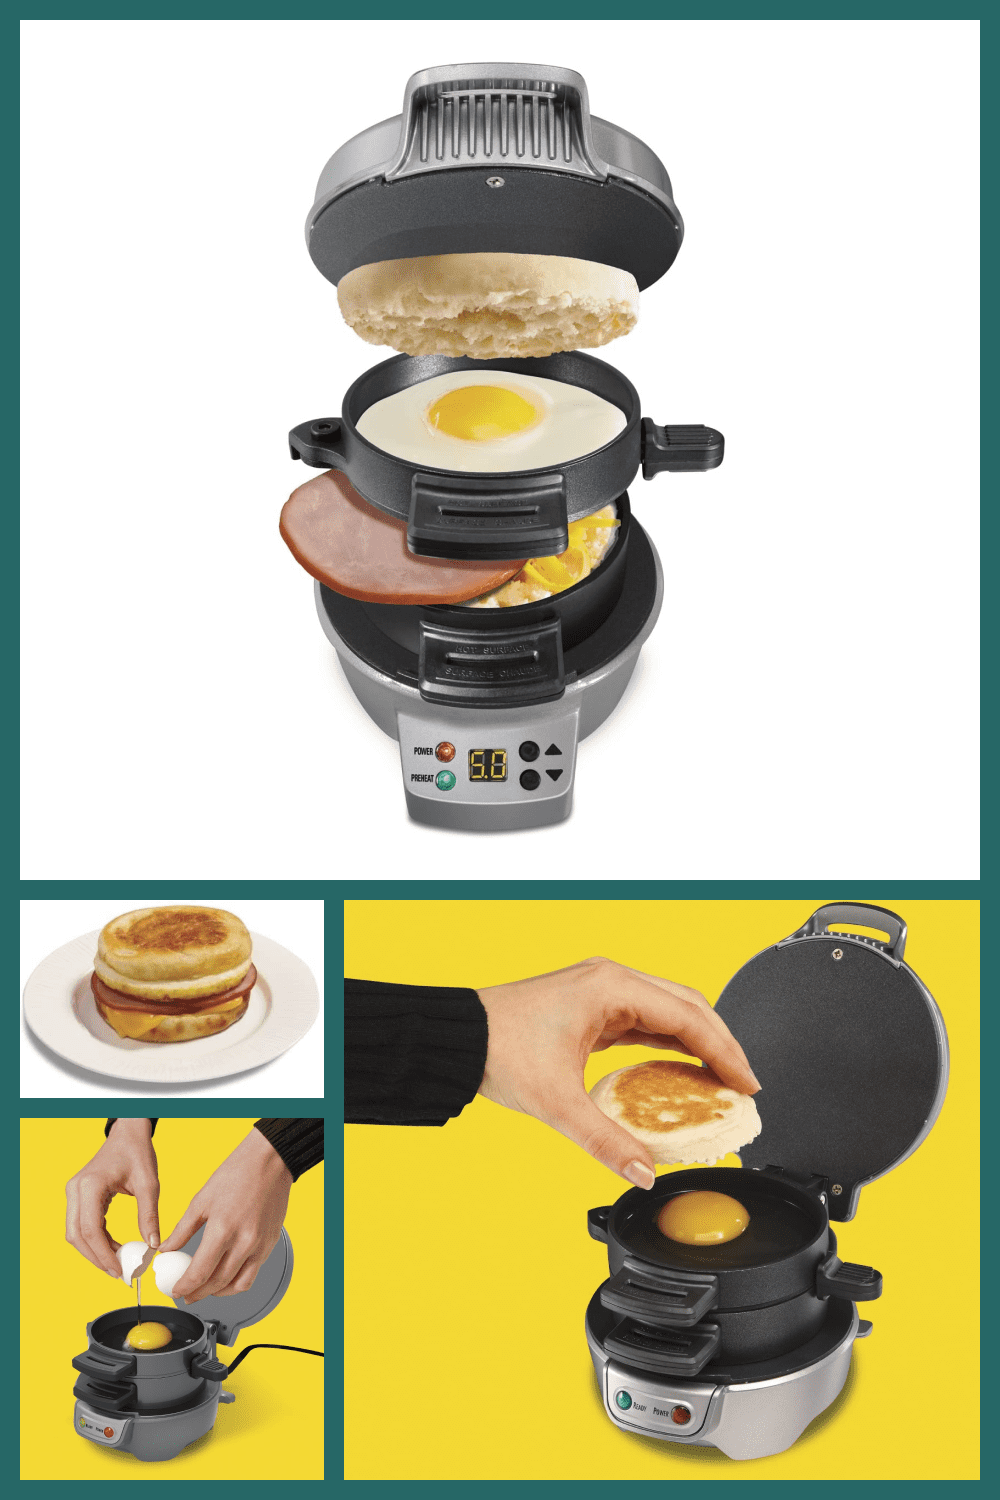 A great device for a quick breakfast when you've overslept or consciously lay down longer than usual.